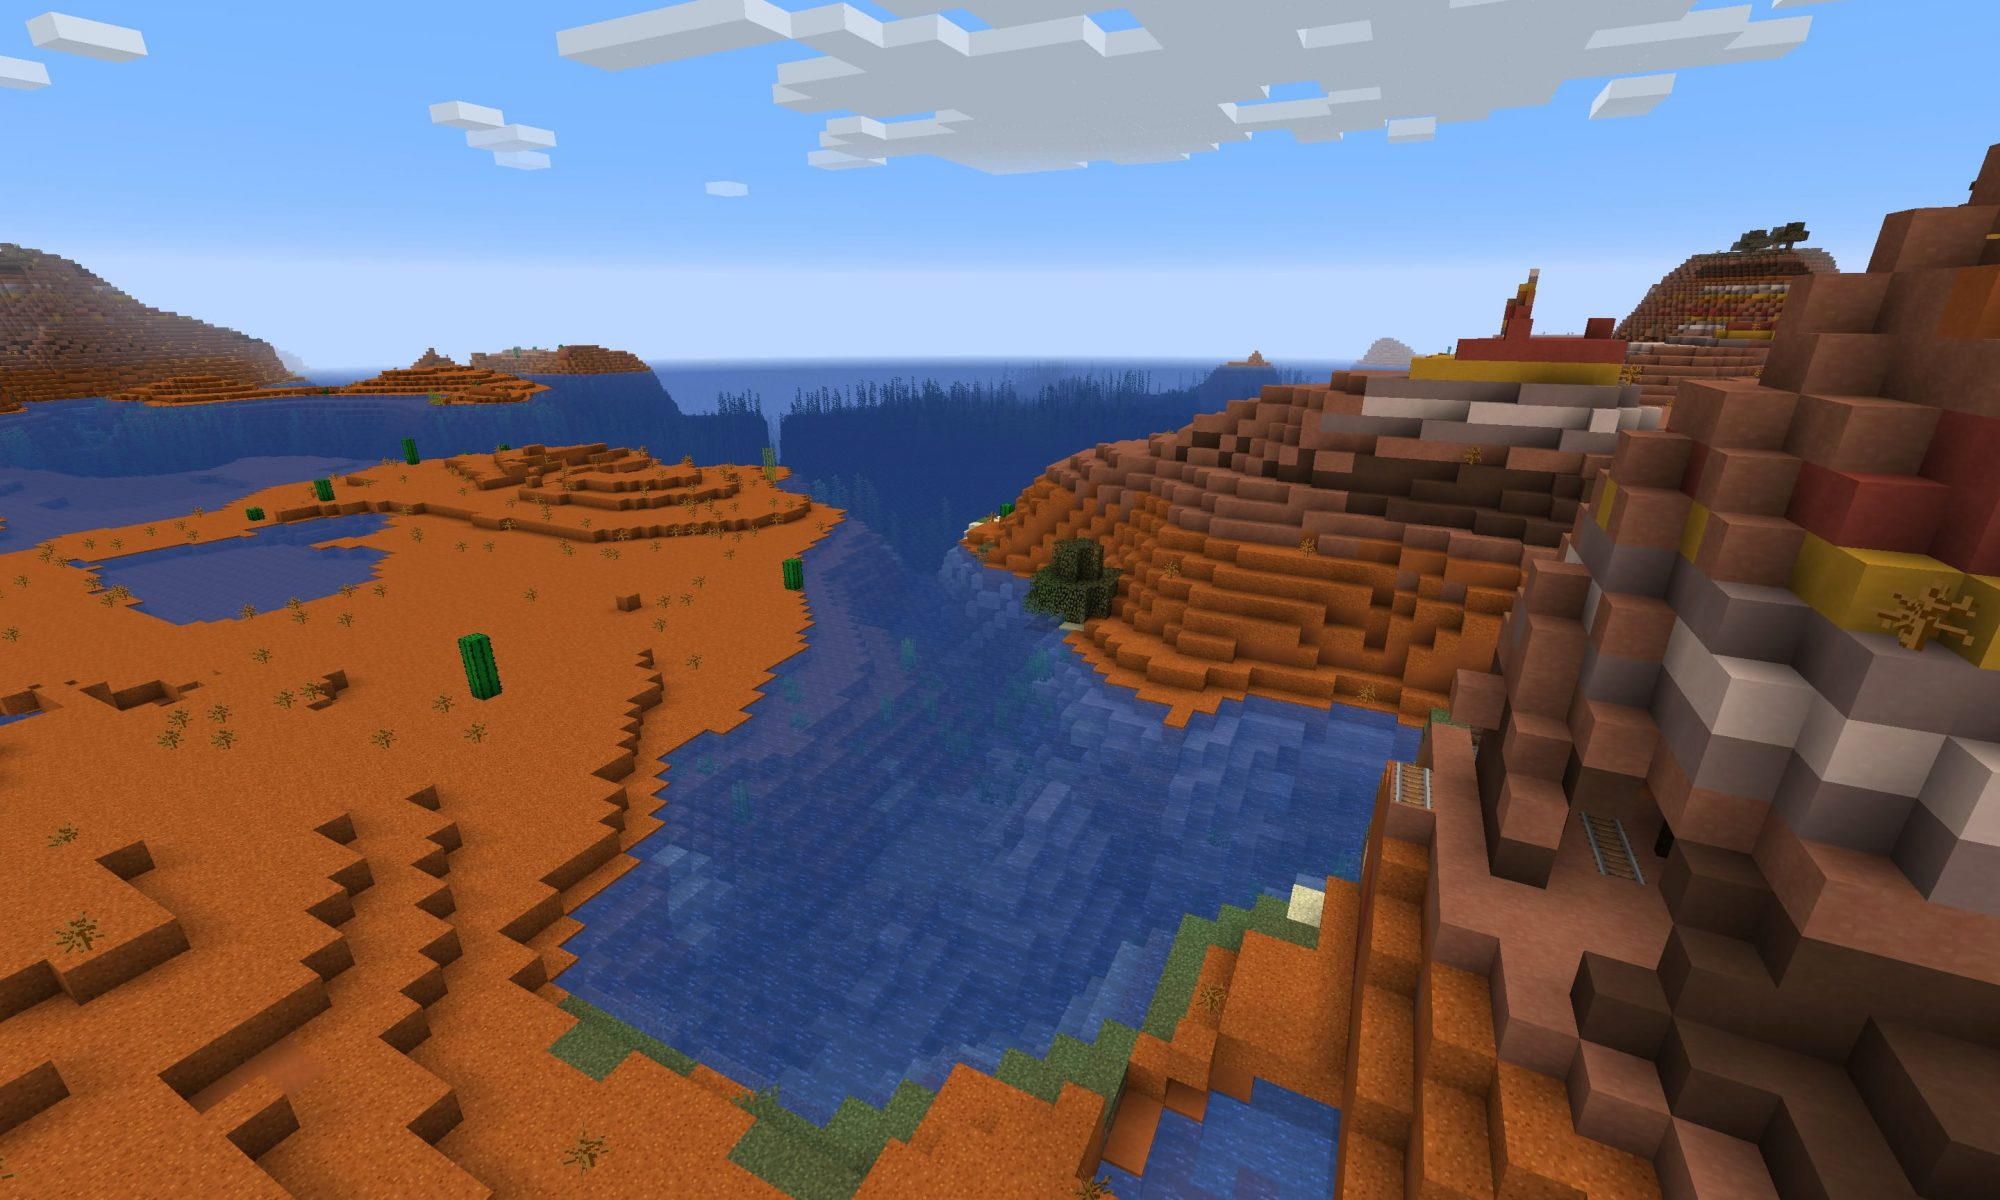 Minecraft Badlands Seed - Java Edition